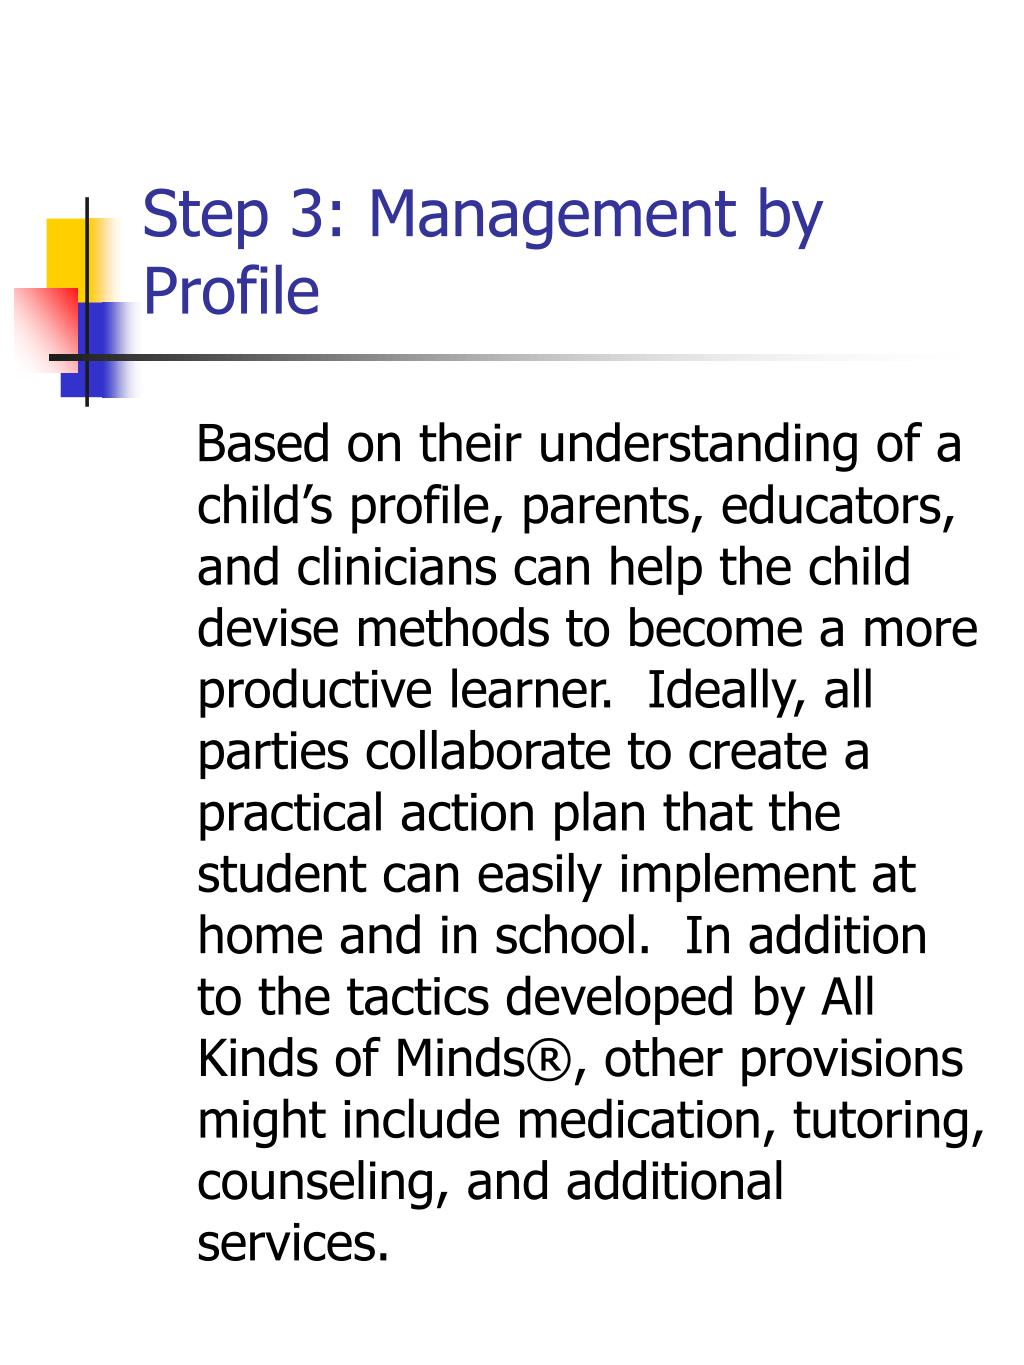 Step 3: Management by Profile